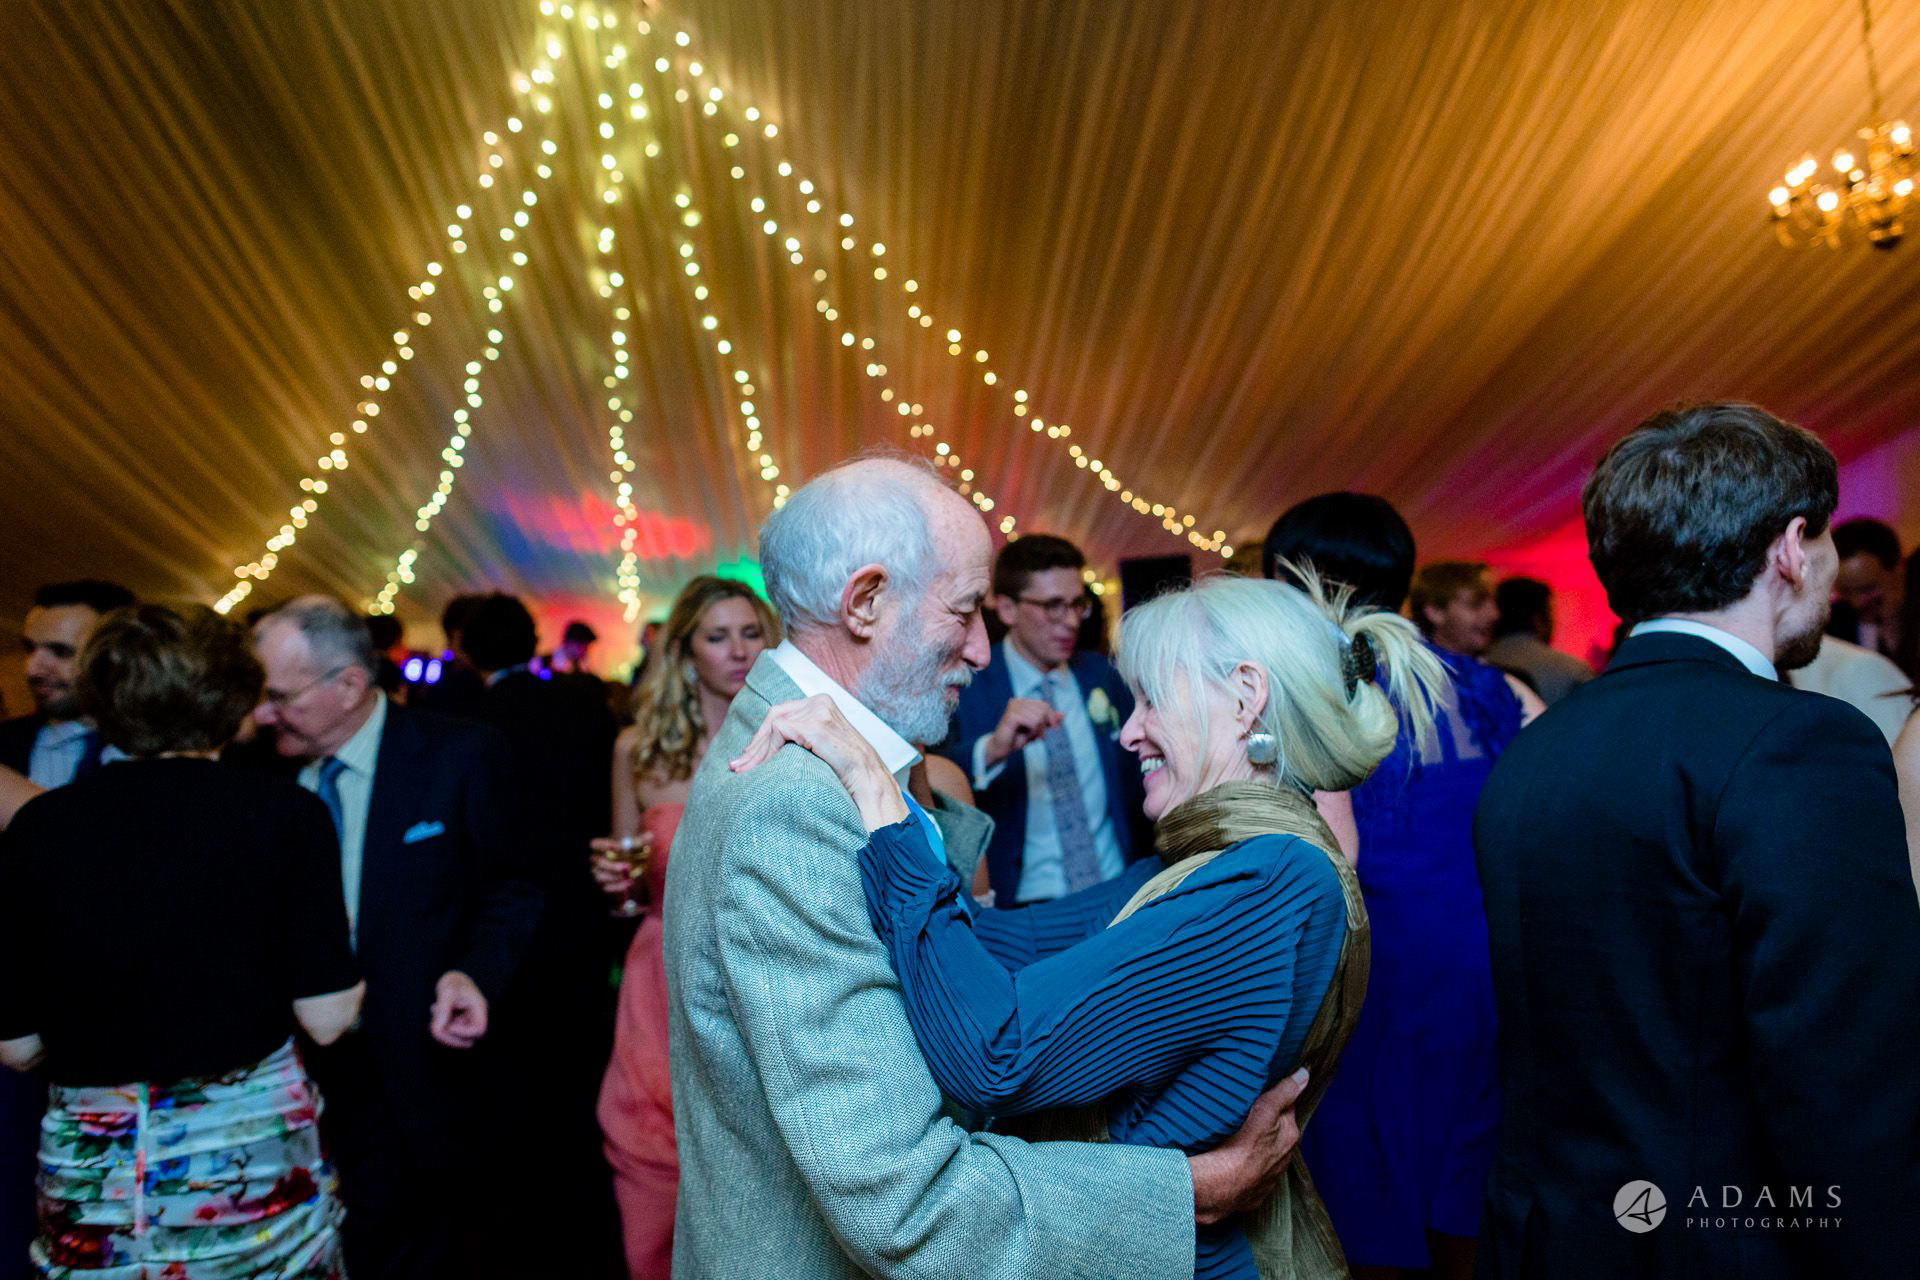 Clare College wedding guests dance close